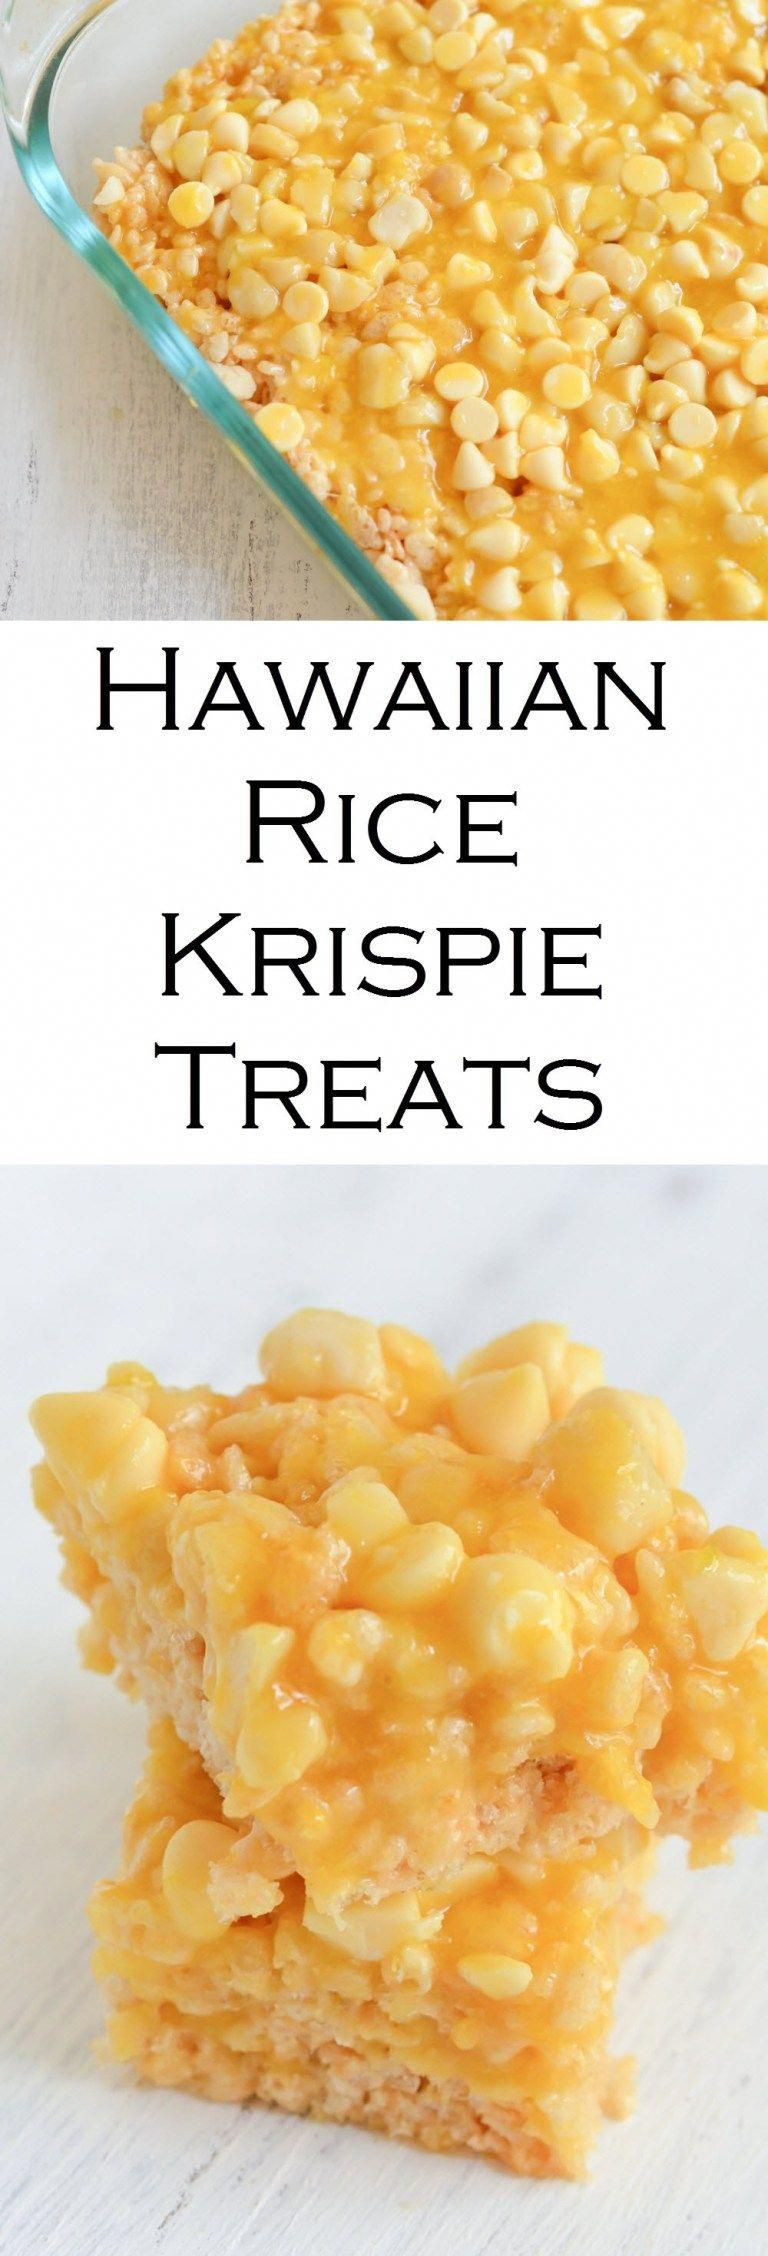 Tropical Rice Krispie Treats. These mango Hawaiian rice krispie treats are filled with white chocolate macadamia nut flavors and topped with a fresh mango glaze. A tropical dessert everyone will love! #hawiiancake